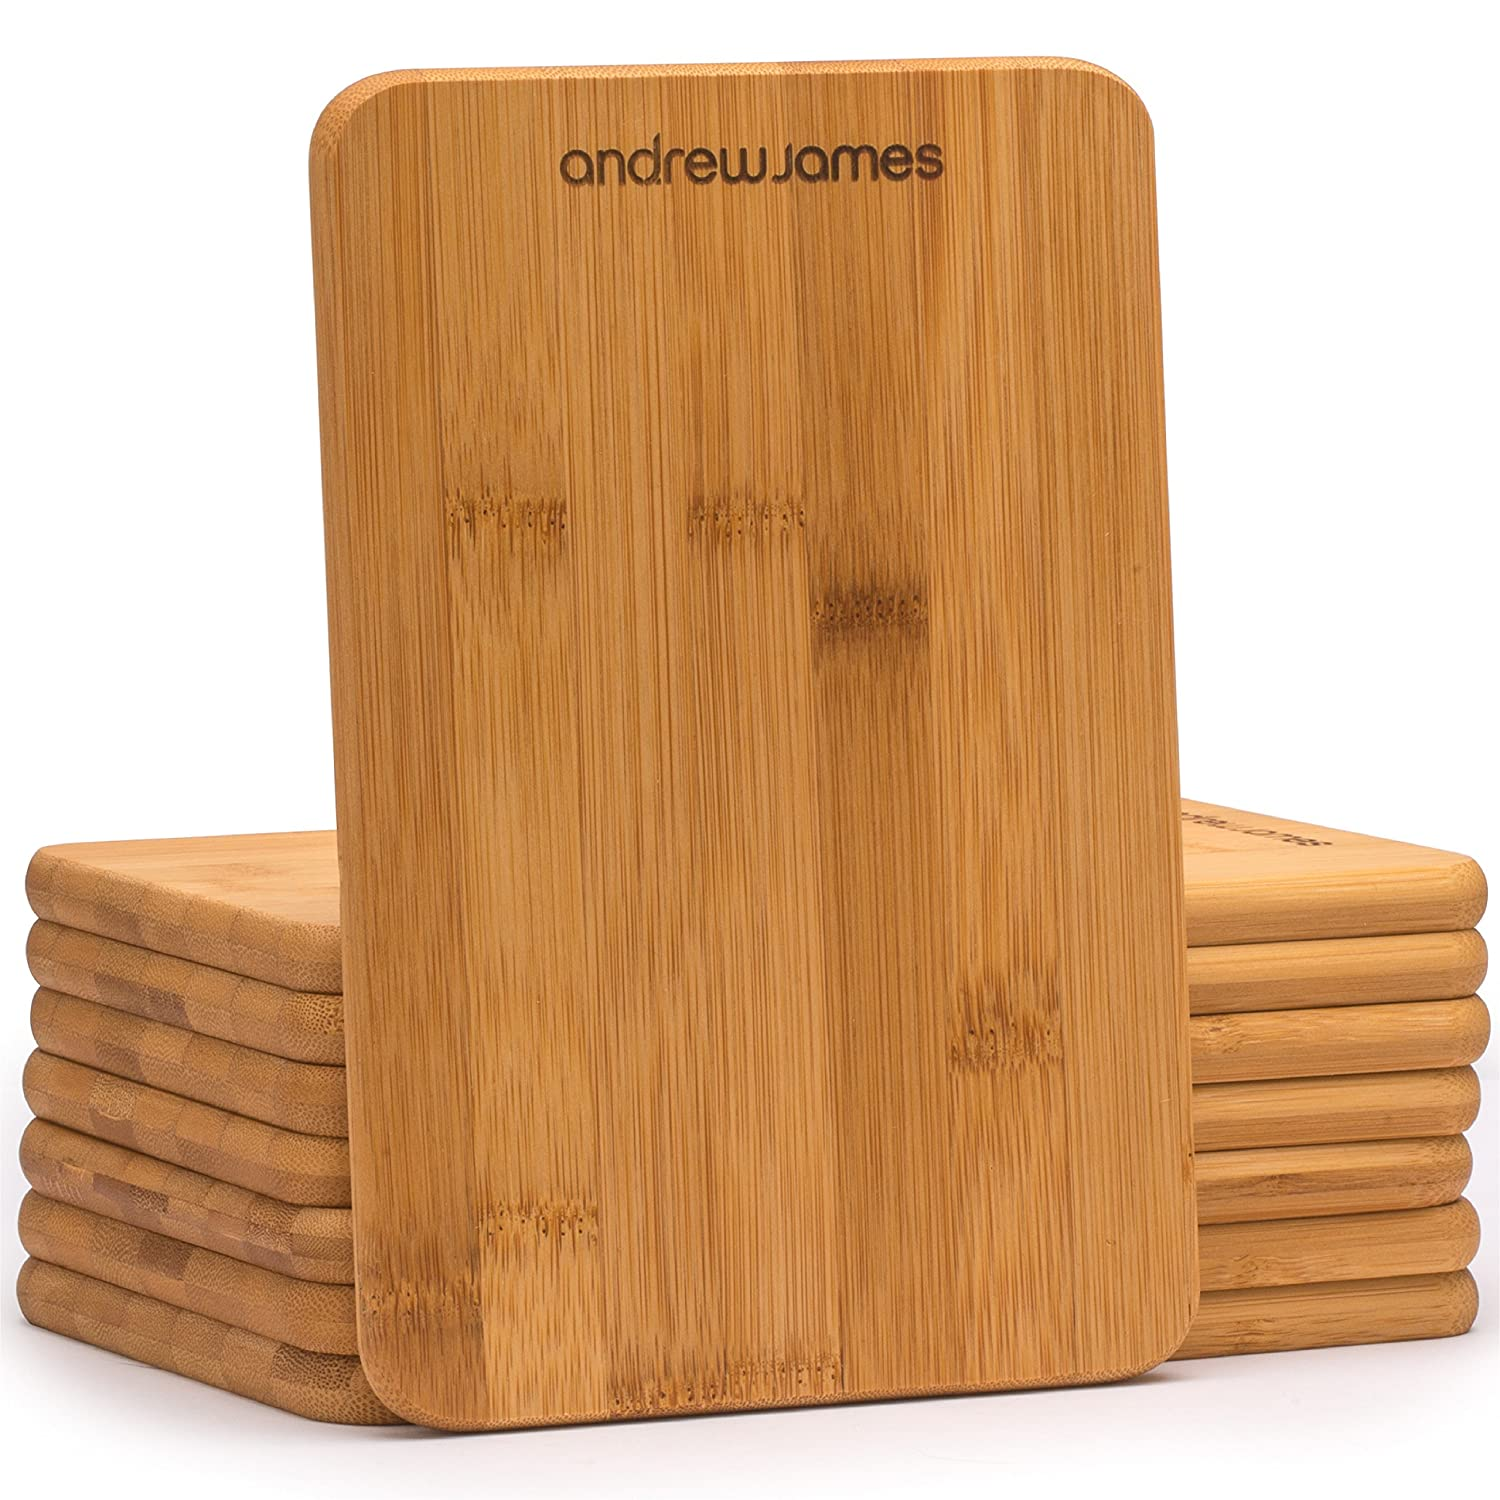 Andrew James Chopping Boards | Set of 8 Bamboo Small Wooden Serving & Cutting Boards | 22 x 15 x 11cm | Ideal for Use with Raclettes & Teppanyaki Grills | 100% Natural Wood